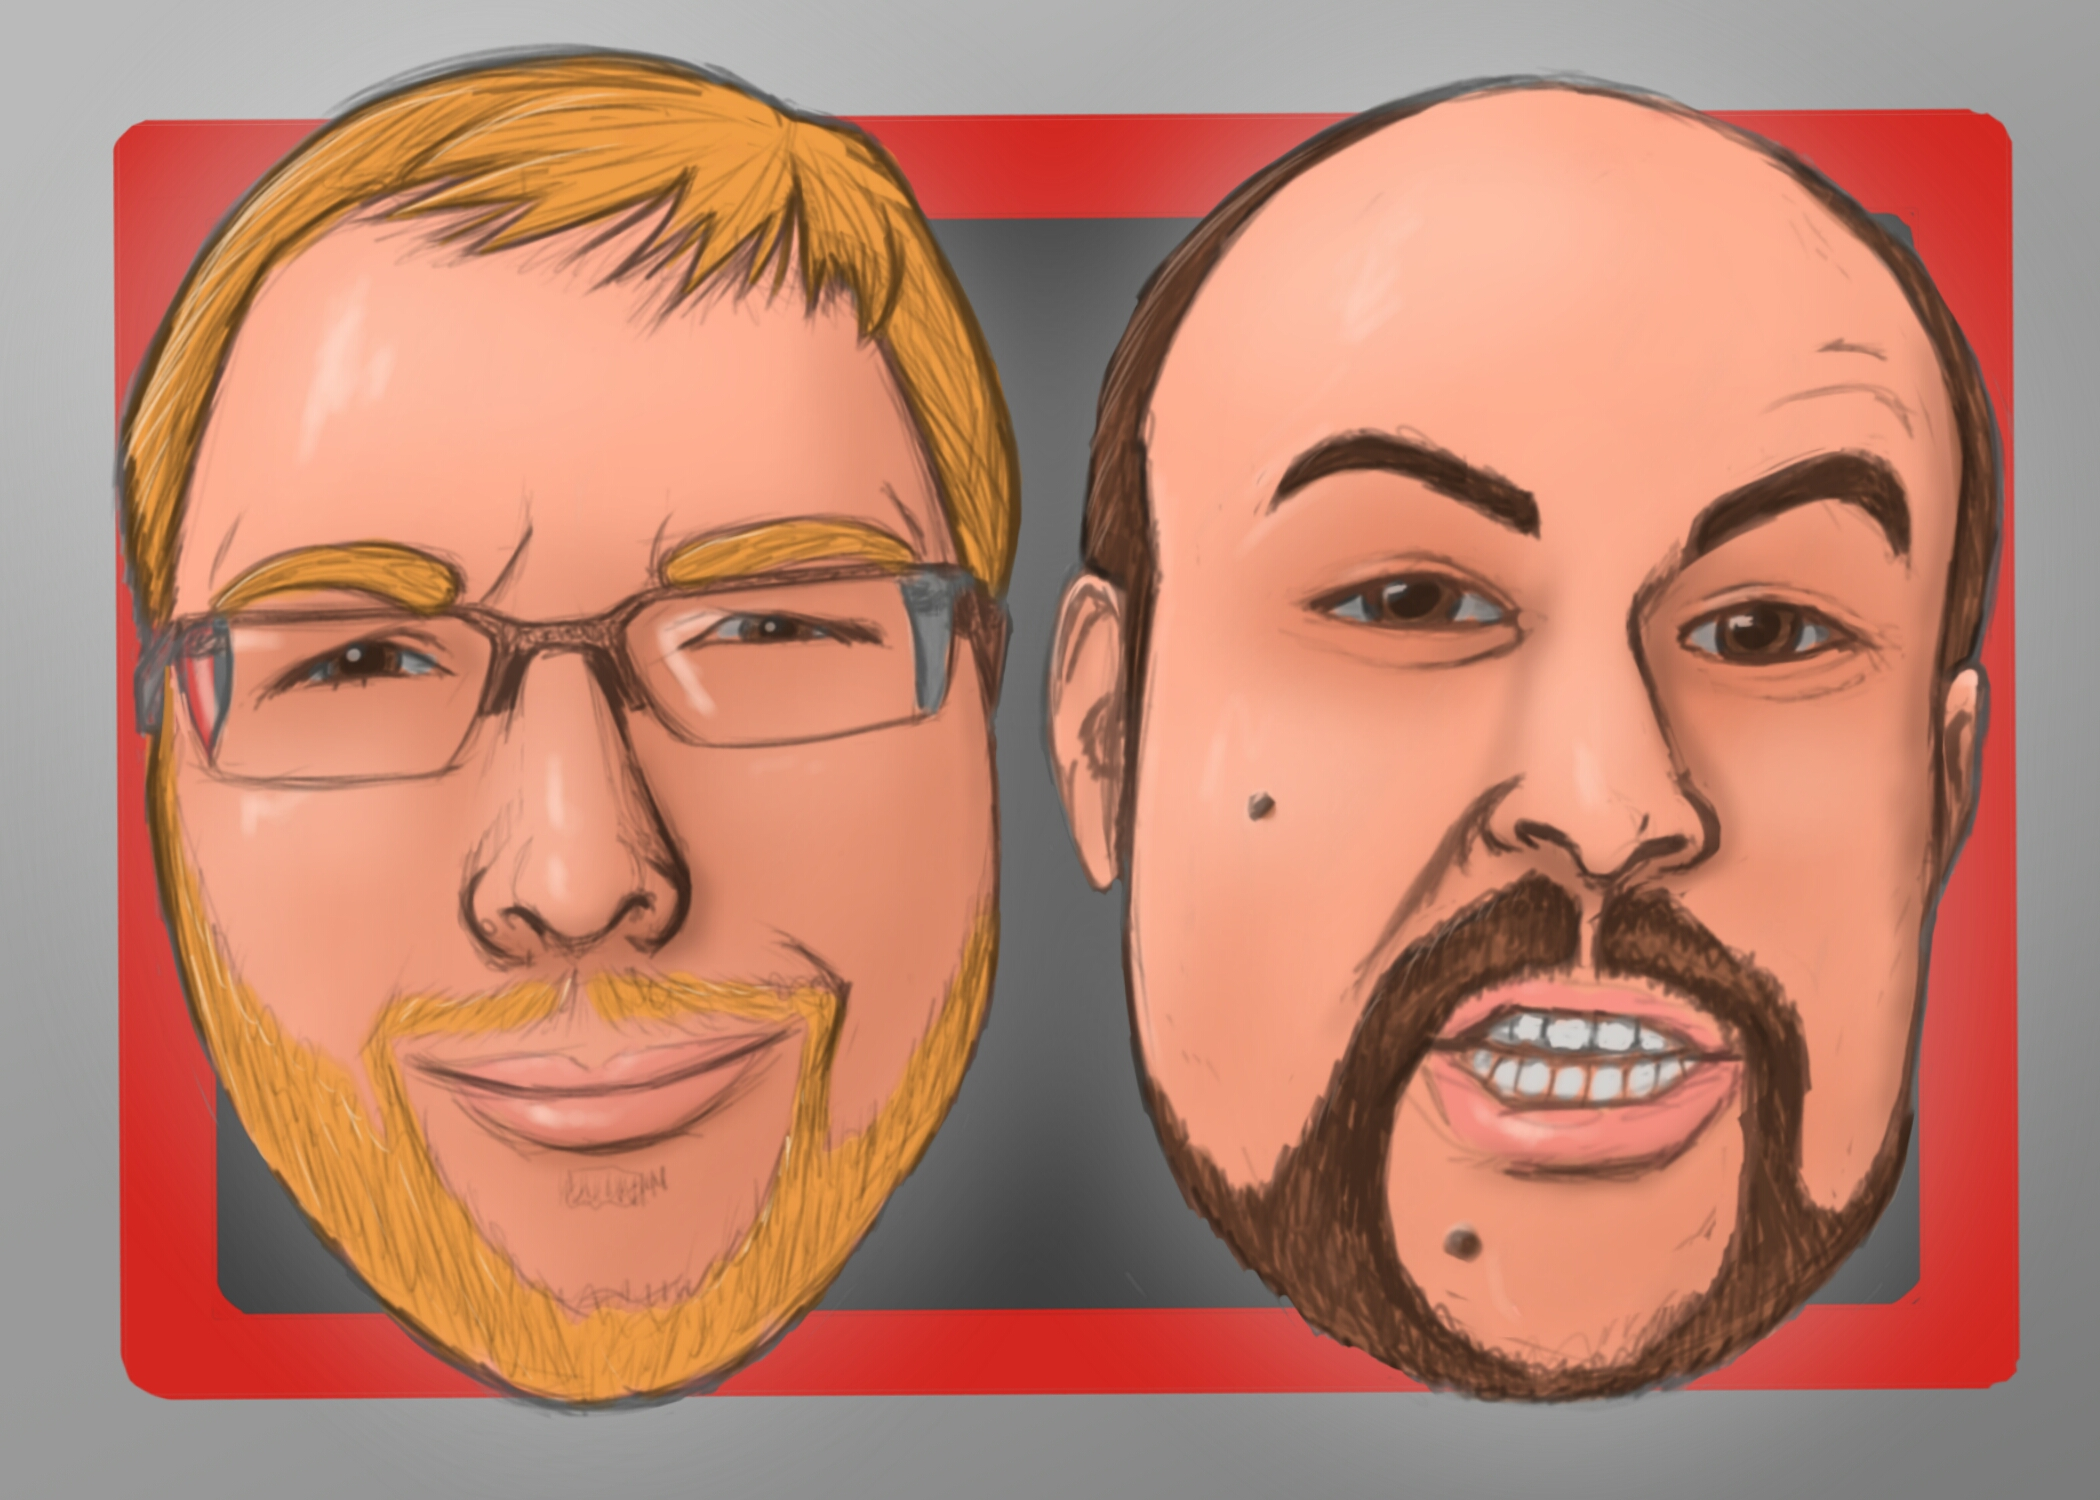 Total Biscuit and Jesse Cox by Kaito85